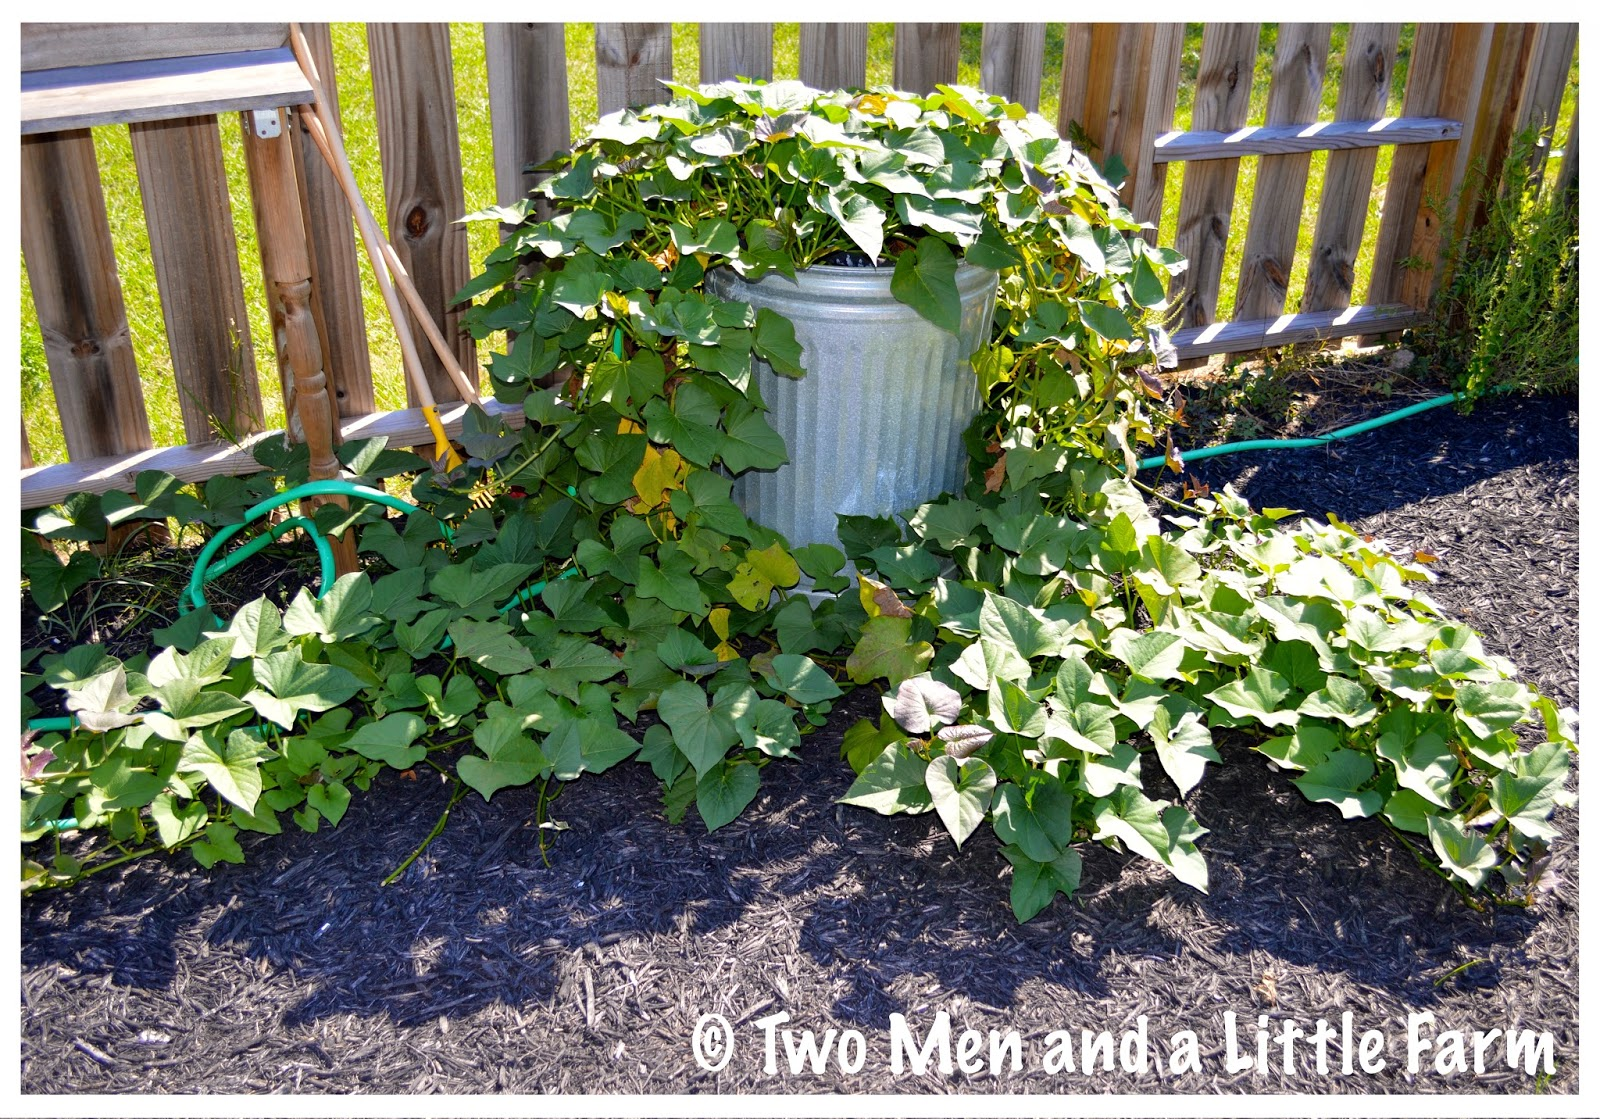 So Last May We Planted Some Sweet Potato Slips That Had Rooted And Grown Used Two Large Metal Trashcans As Containers